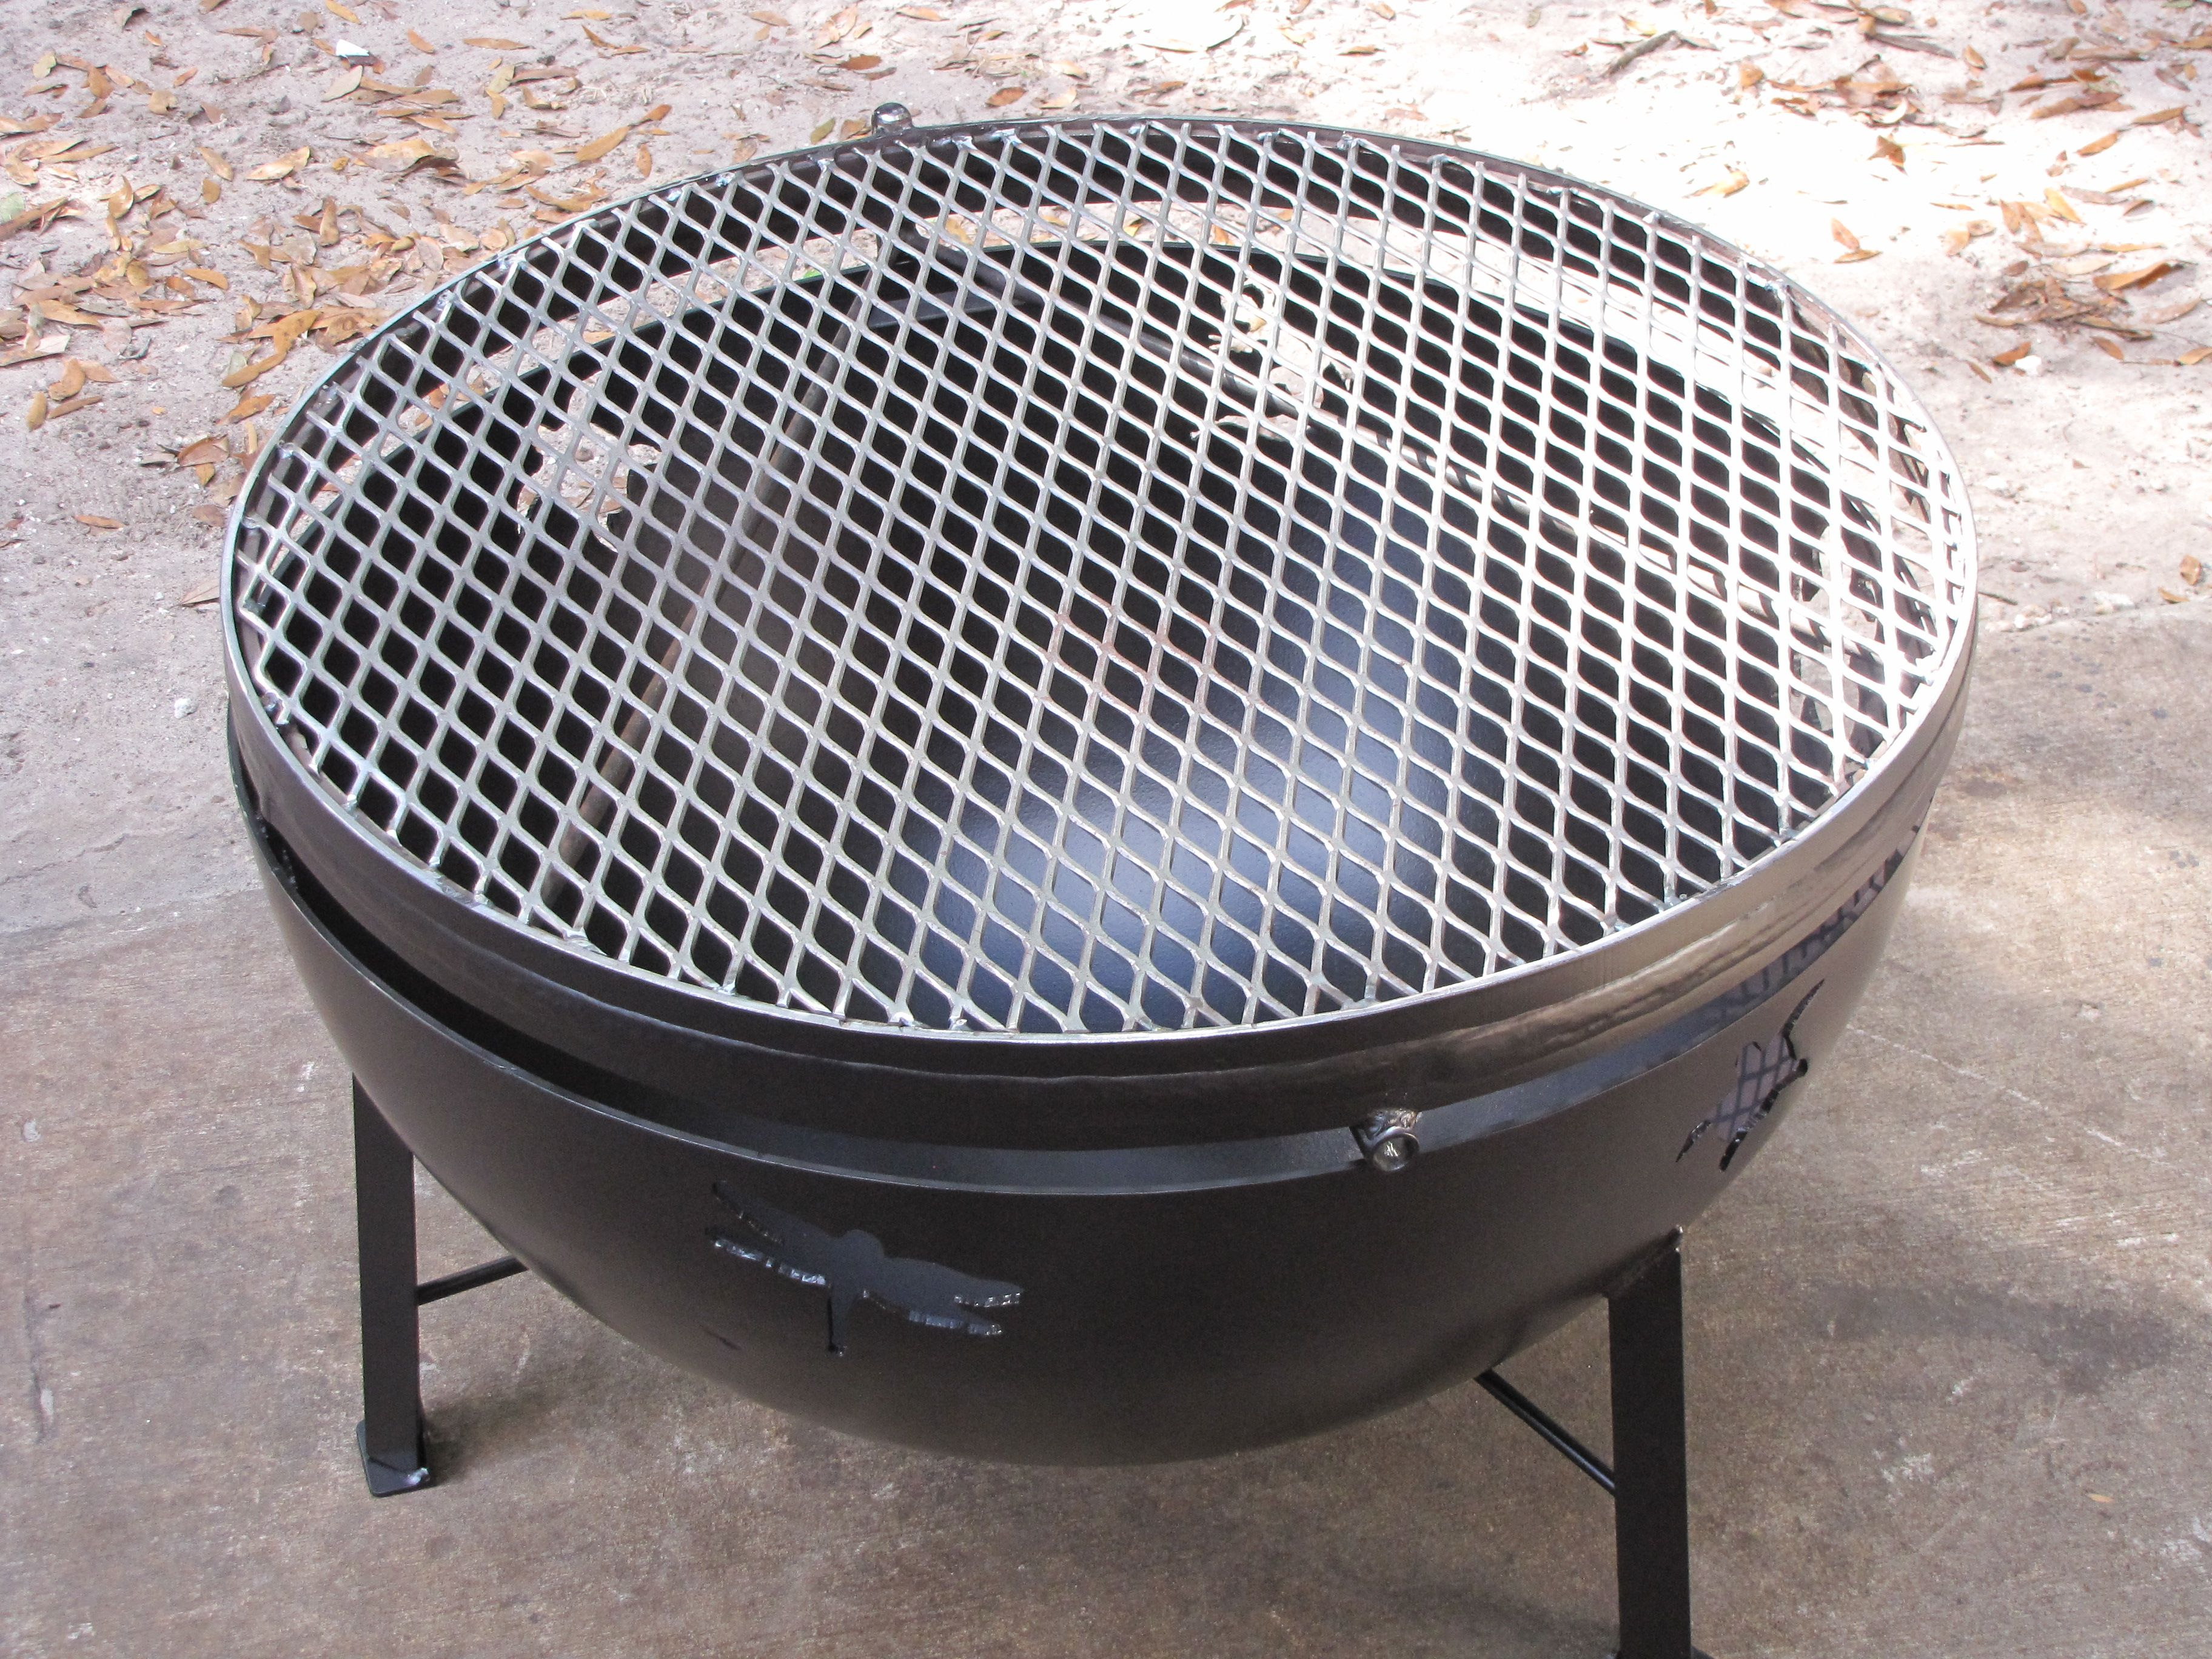 30 Fire Pit With Cook Grate Fire Pit With Cooking Grate Outdoor Cooking Garage Remodel